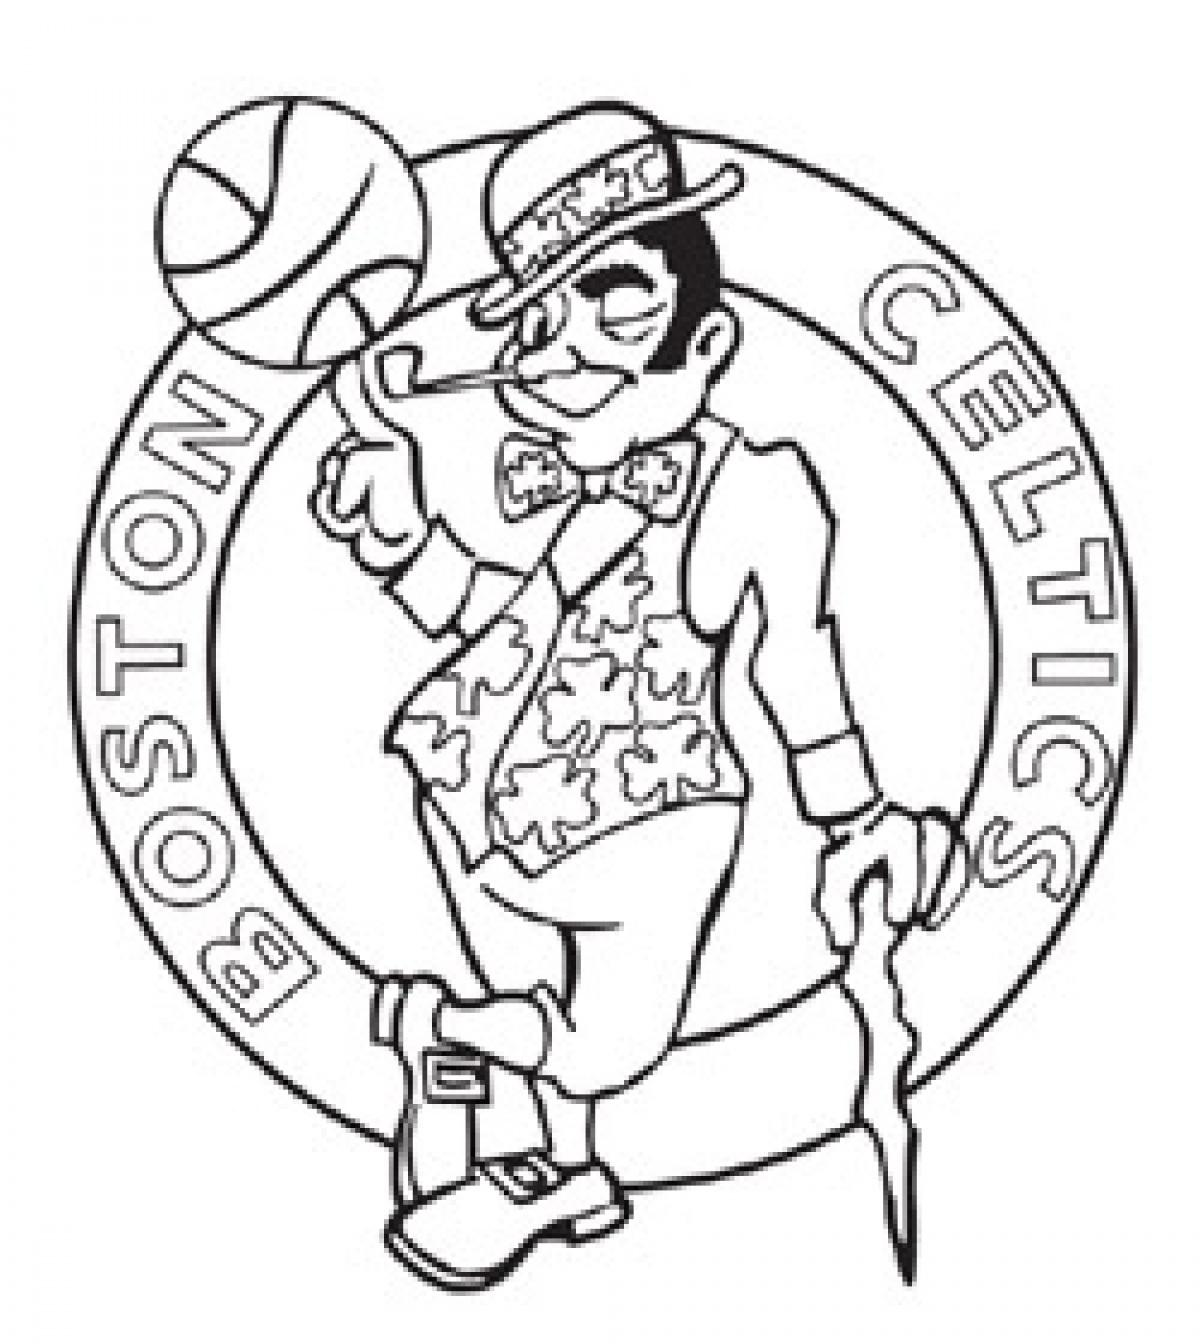 1200x1344 Nba Logo Coloring Pages Nba Basketball Coloring Pages Basketball